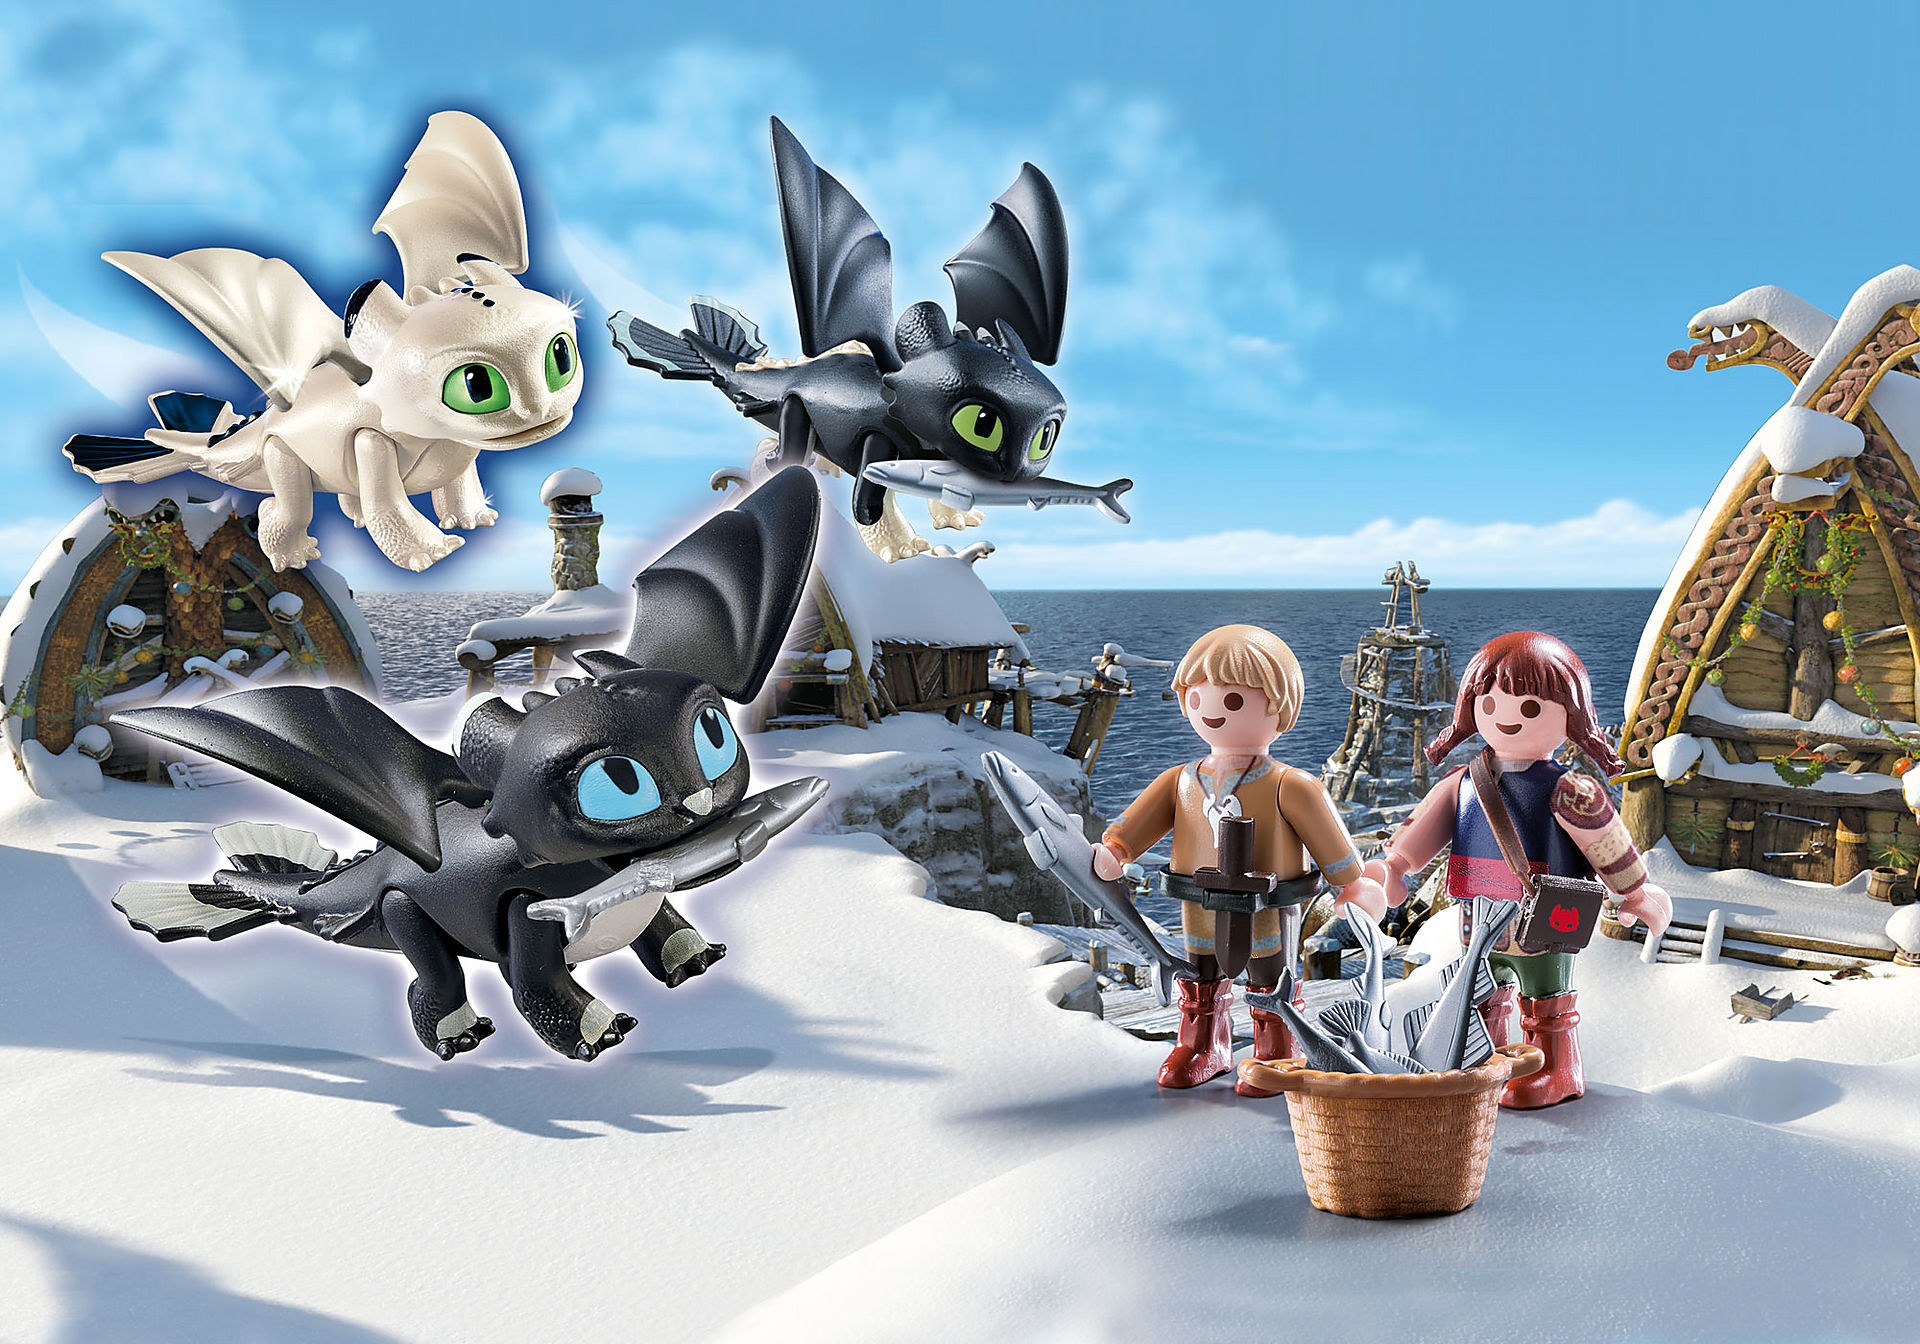 http://media.playmobil.com/i/playmobil/70457_product_detail/Baby dragons with children